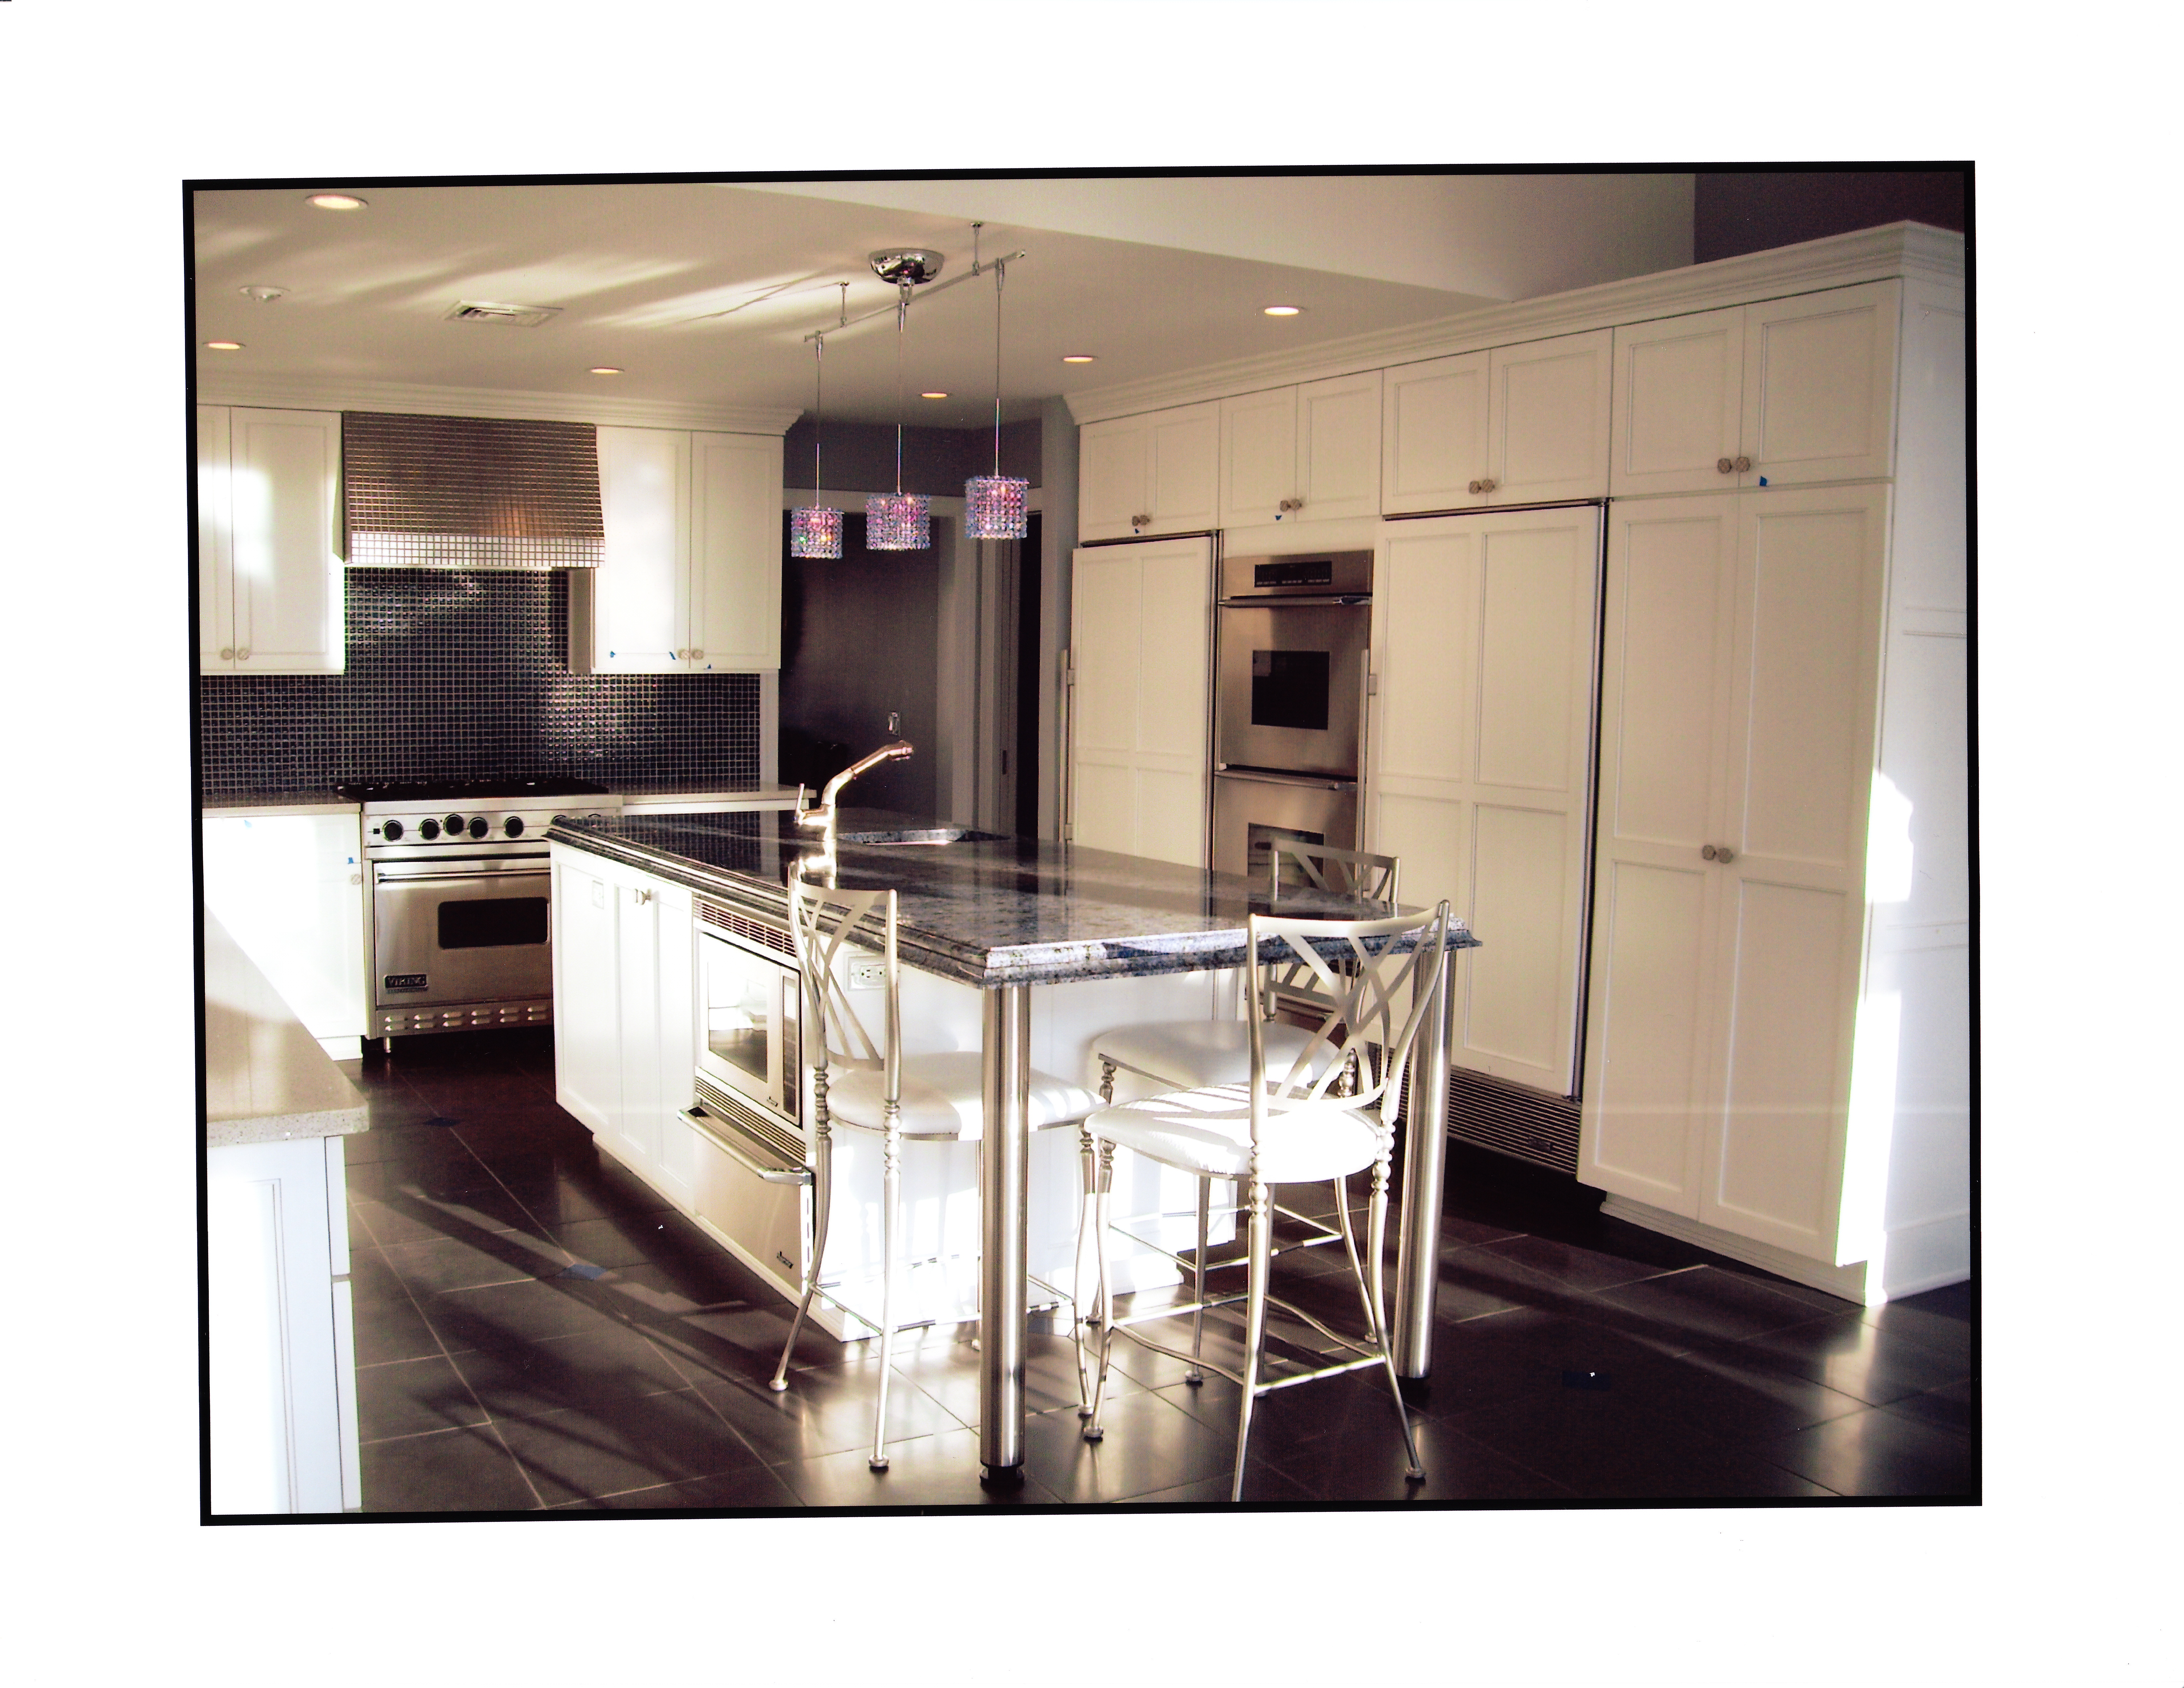 New Jersey Kitchen Cabinets Kitchens To Die For By Joe Shadel General Contracting Llc Home